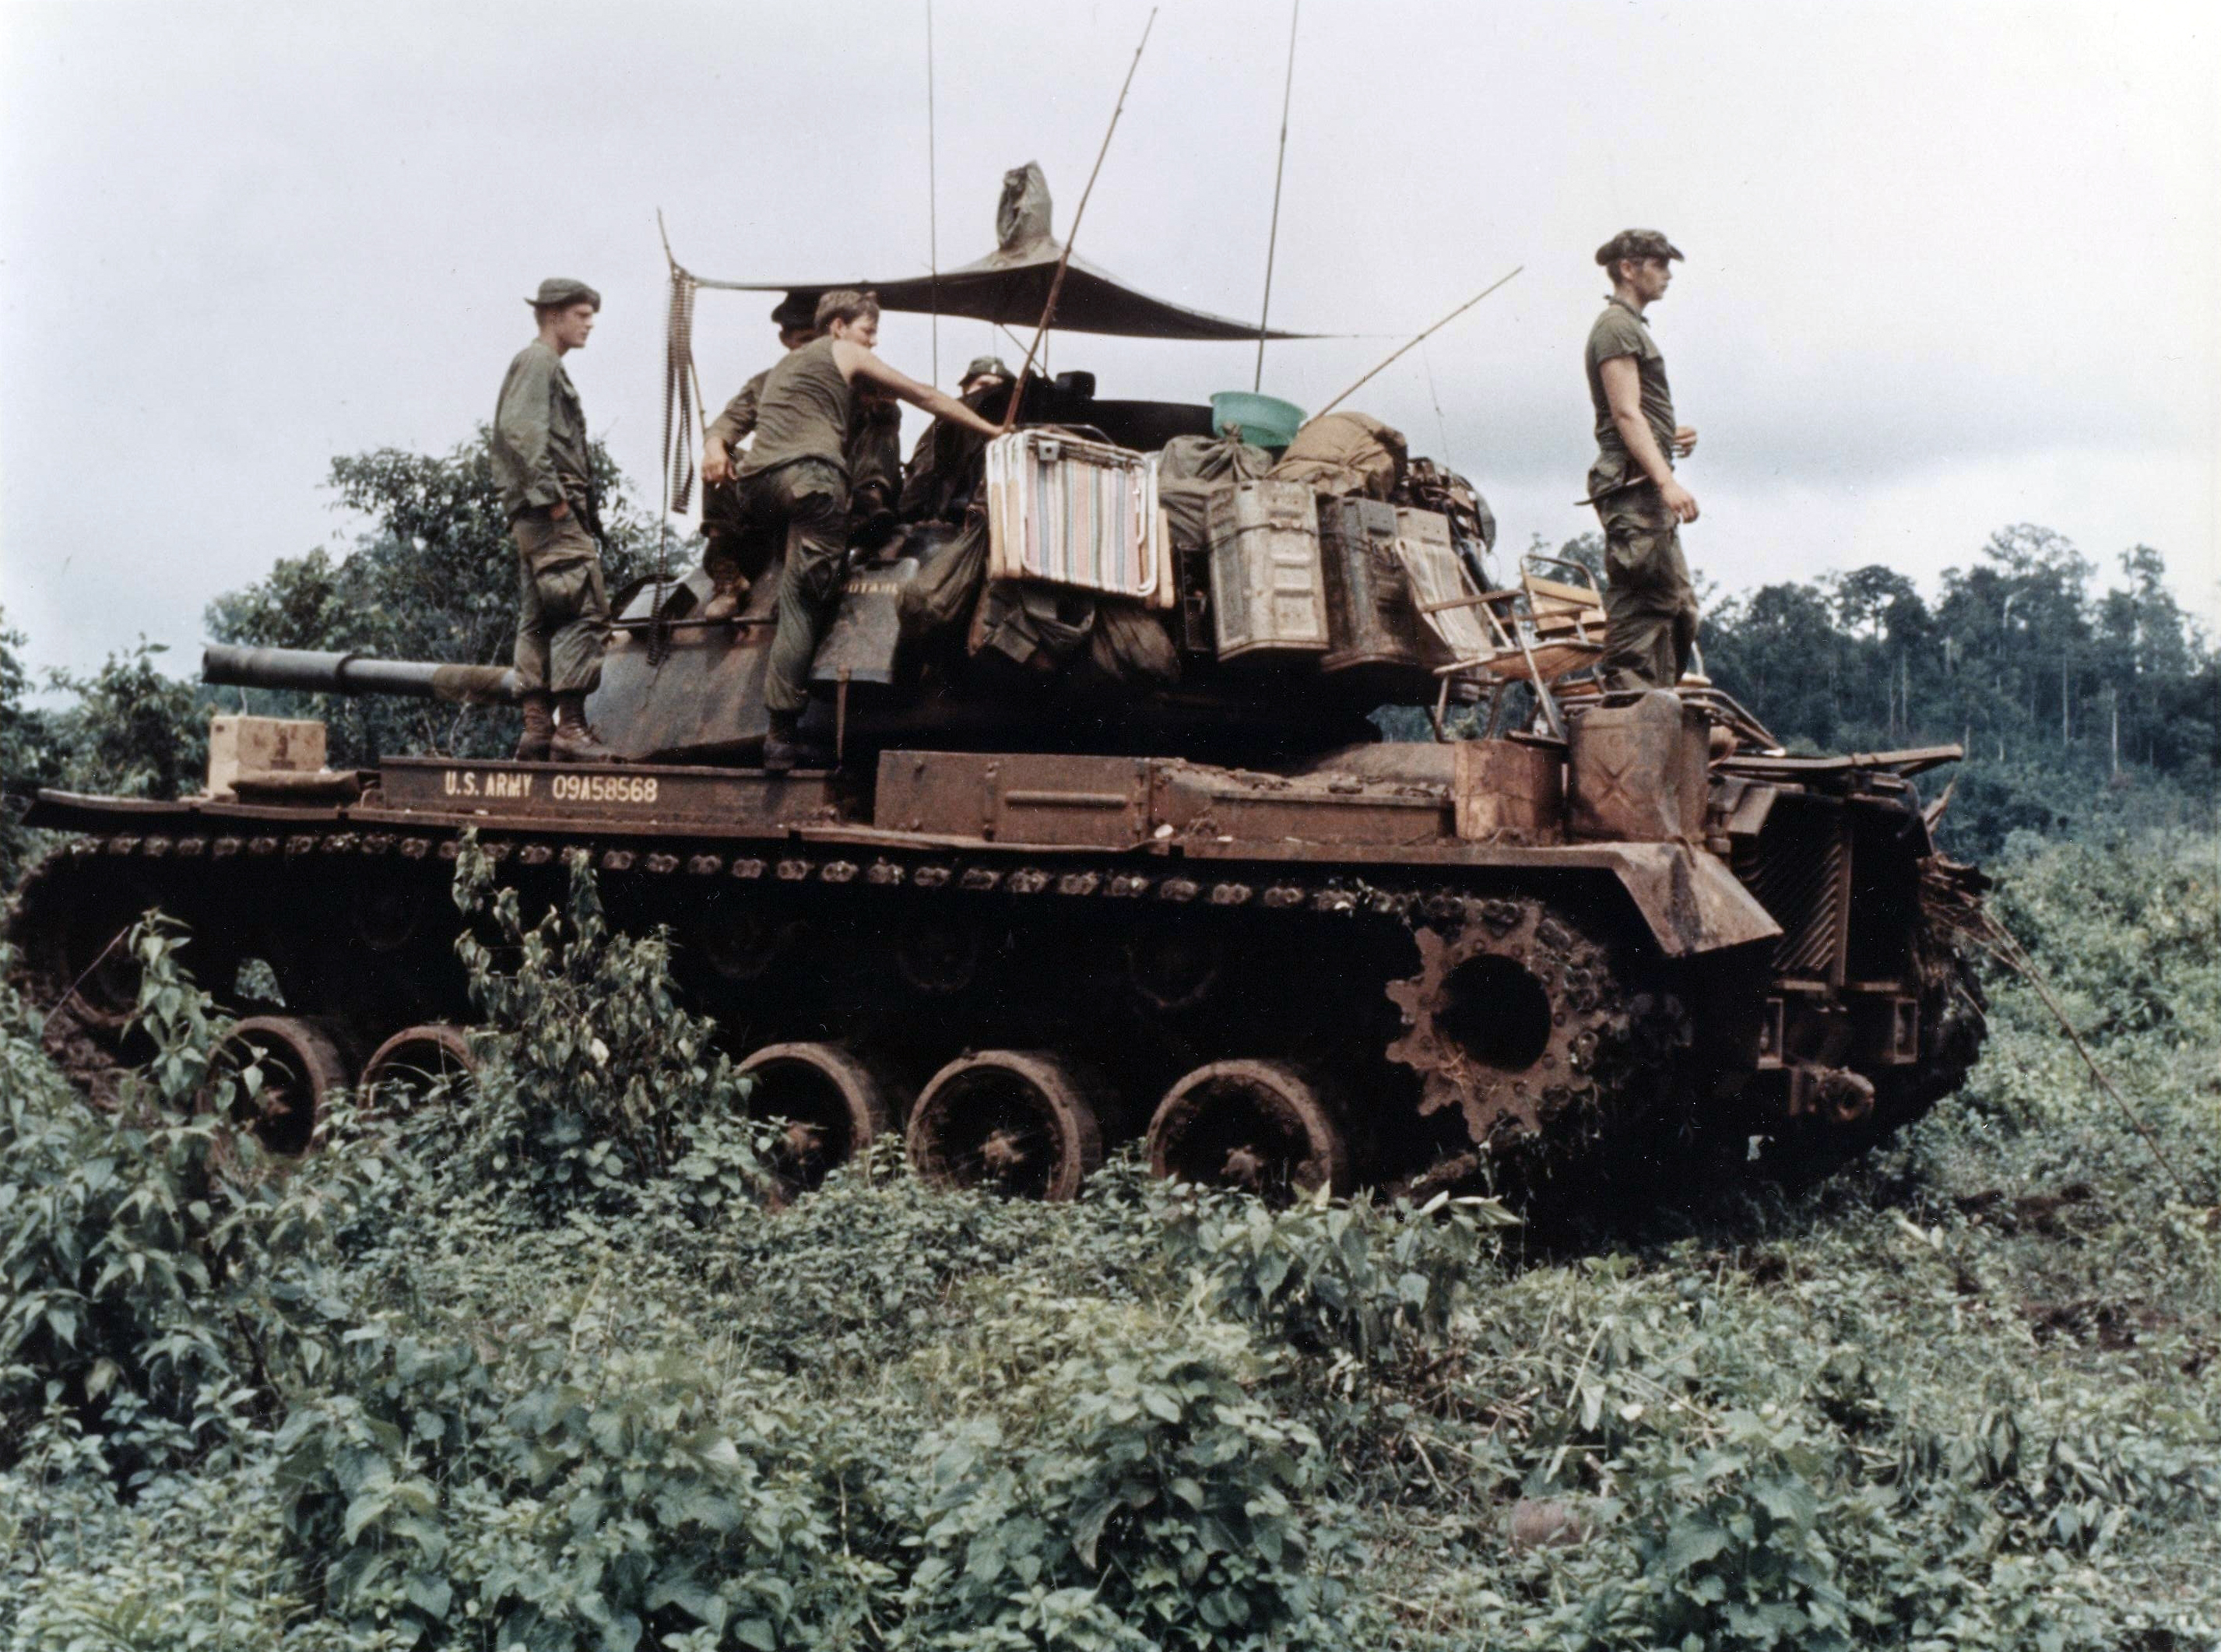 1995 Ford Xl 4 9 Engine Diagram M48 Patton Wikipedia Men Of Troop B 1st Squadron 10th Cavalry Regiment 4th Infantry Division And Their Tank Move Through The Dense Jungle In Central Highlands